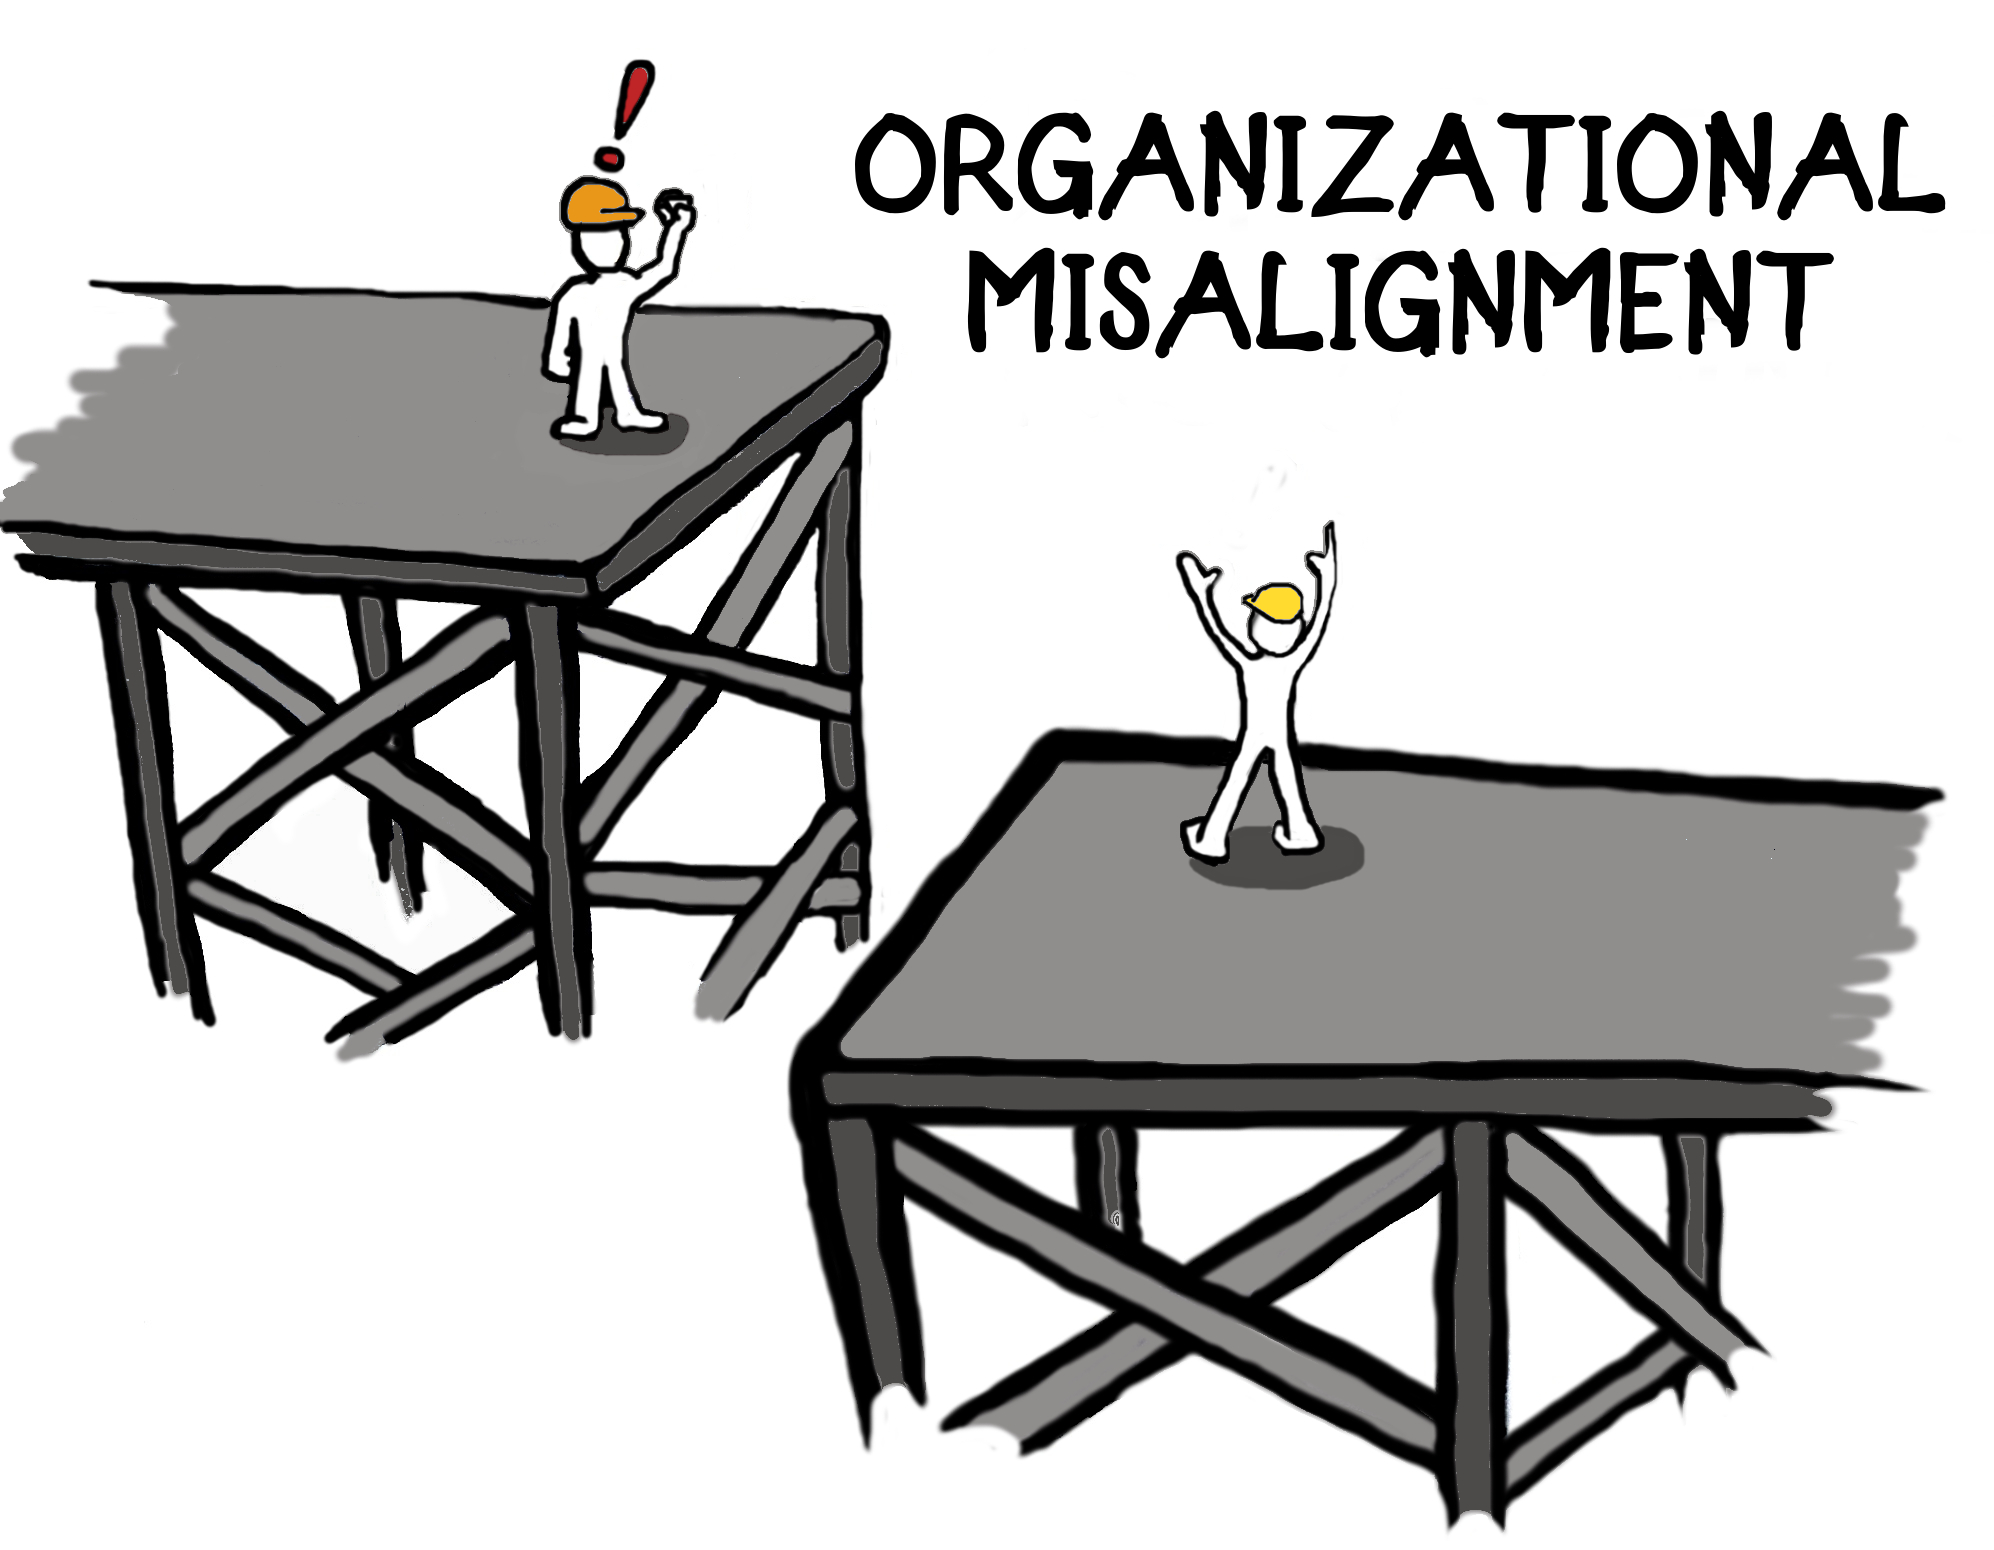 Organizational Misalignment